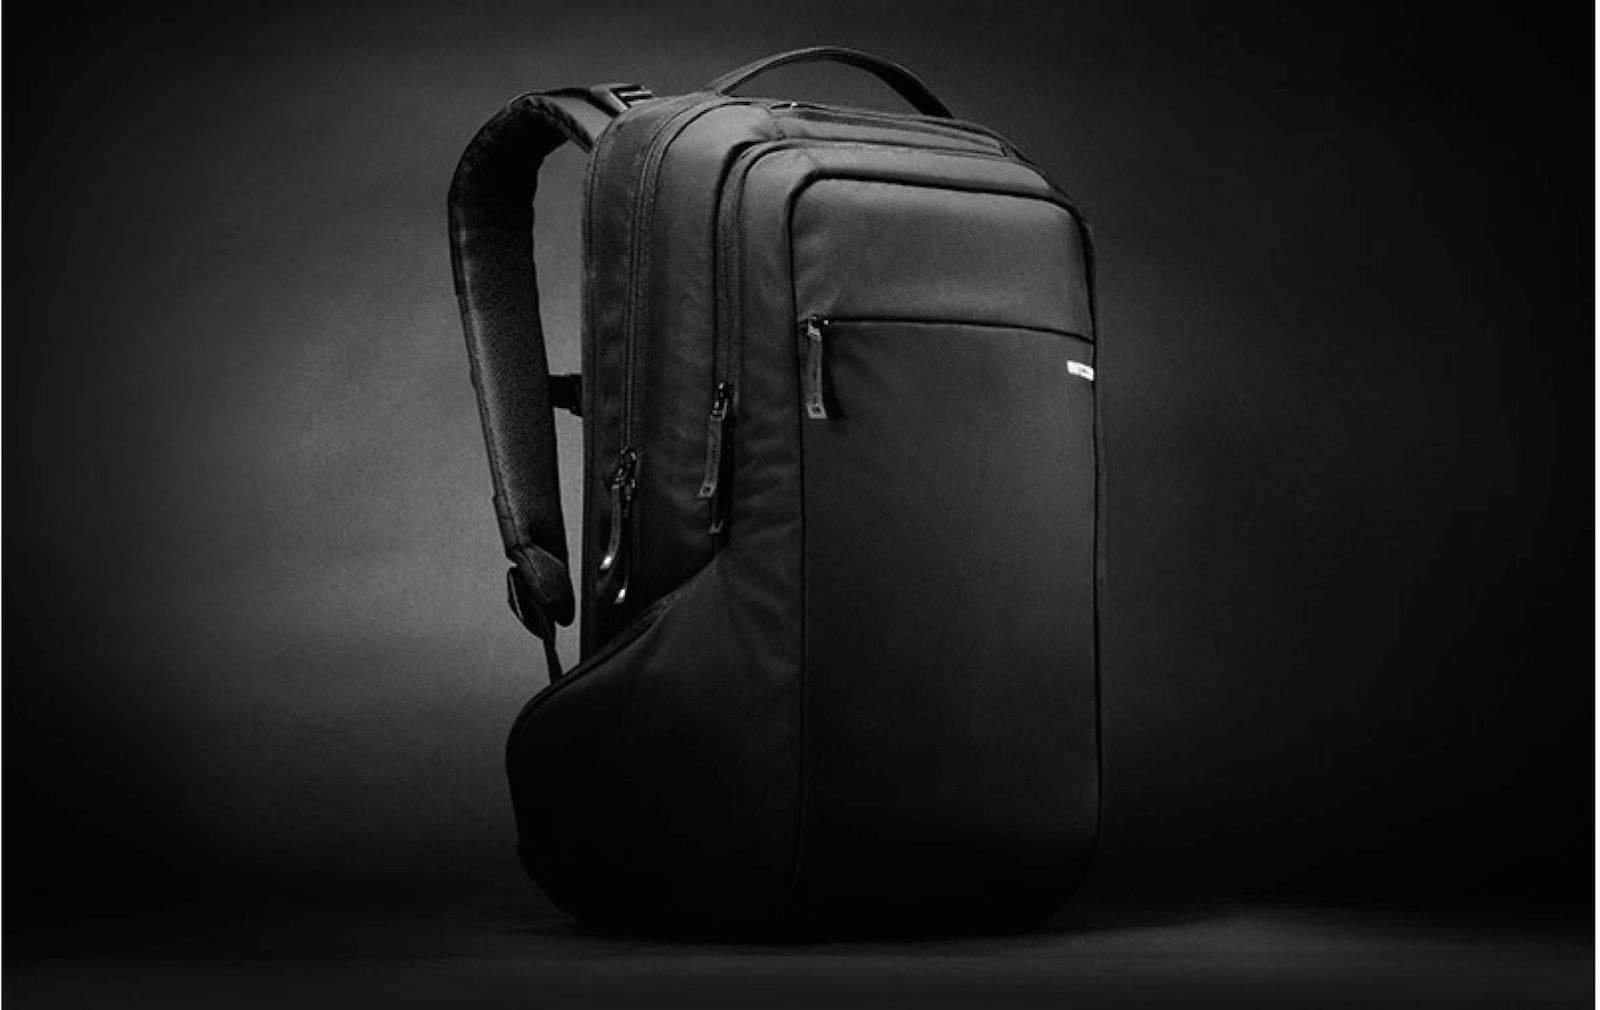 incase calls their new icon  u0026 39 the best backpack we u0026 39 ve ever